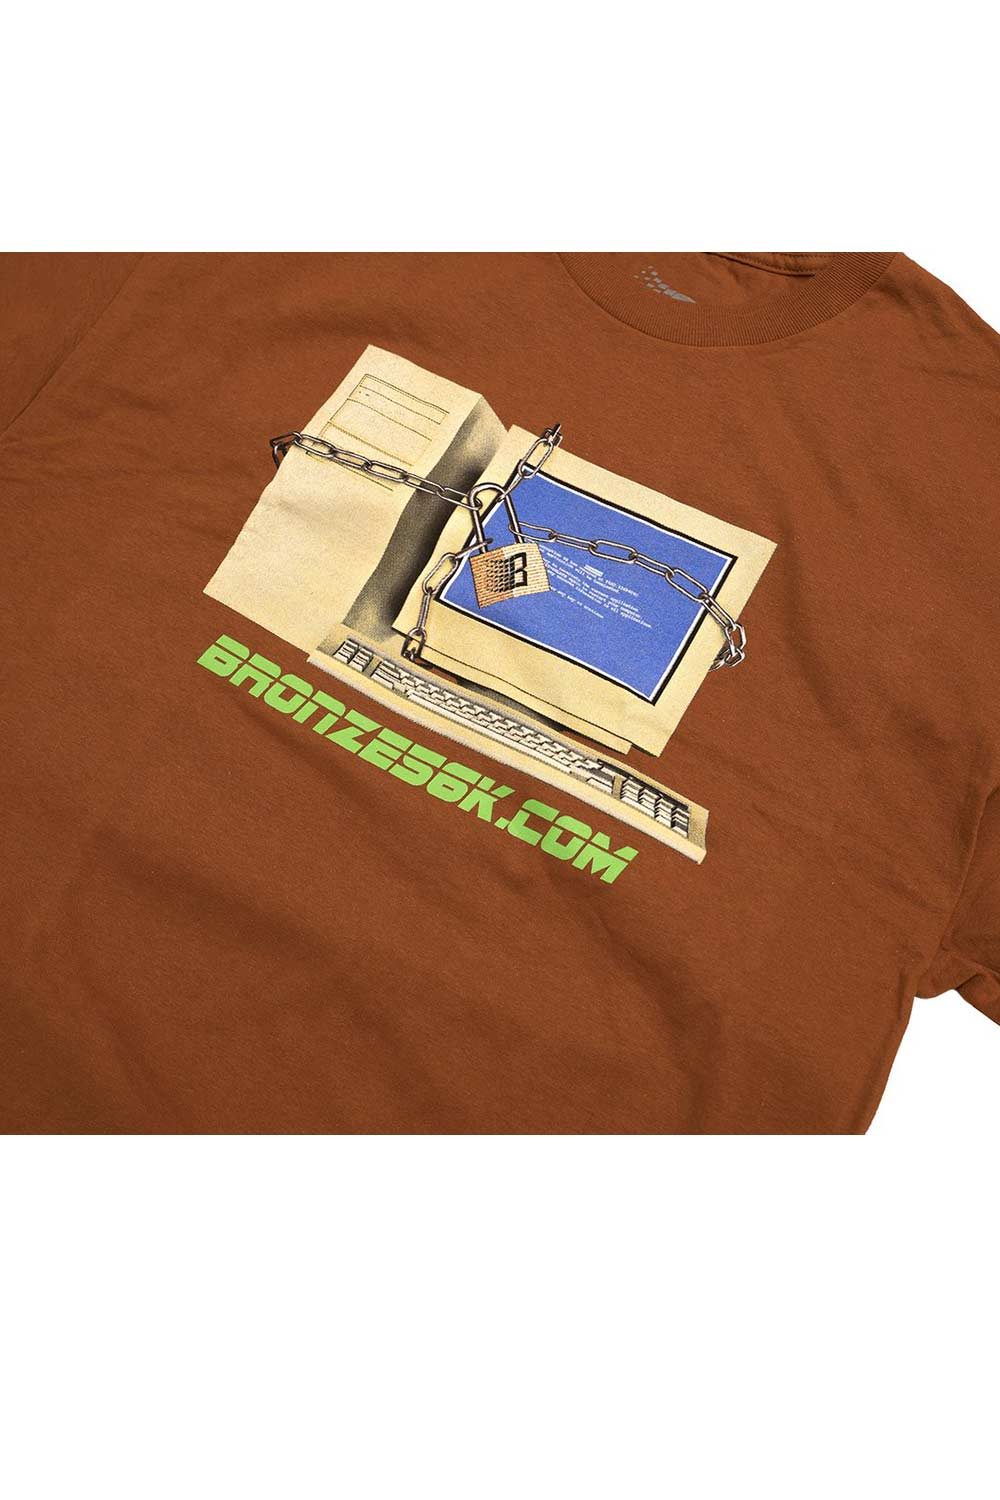 Bronze 56K Firewall Tee - Texas Orange